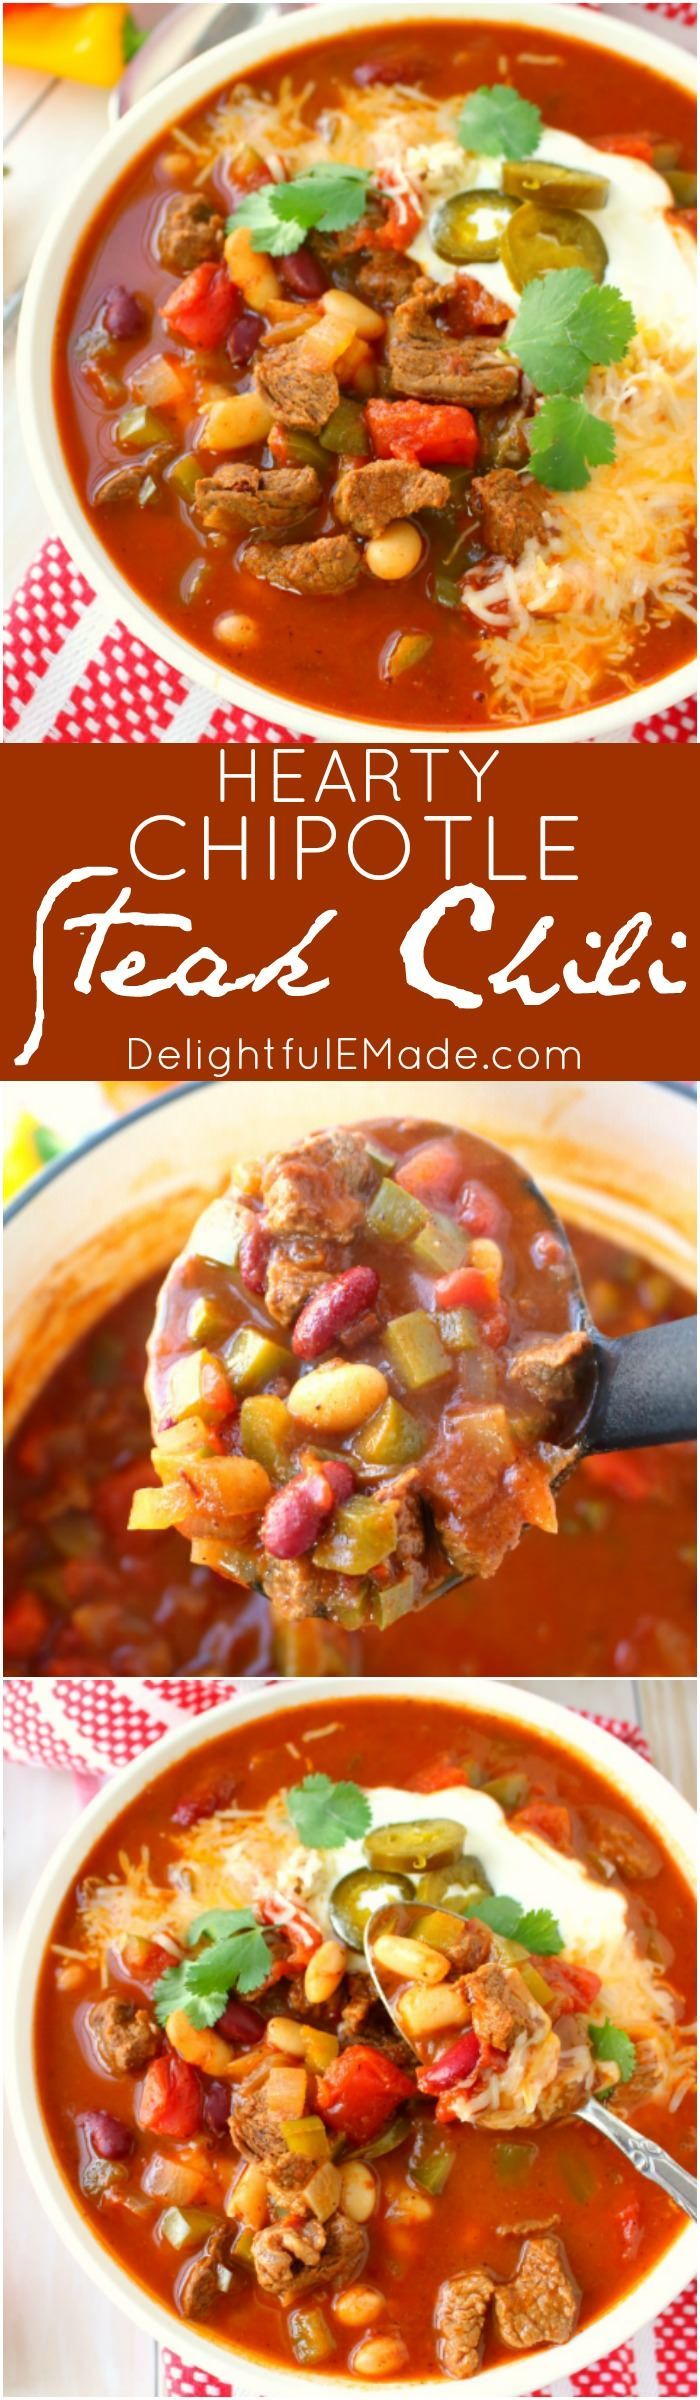 Let me introduce you to your new favorite chili recipe!  This Hearty Chipotle Steak Chili is an amazing dinner option that's loaded with tender sirloin steak, beans, peppers and tomatoes.  Perfect if you love a hot, delicious bowl of soup on a cold day!: